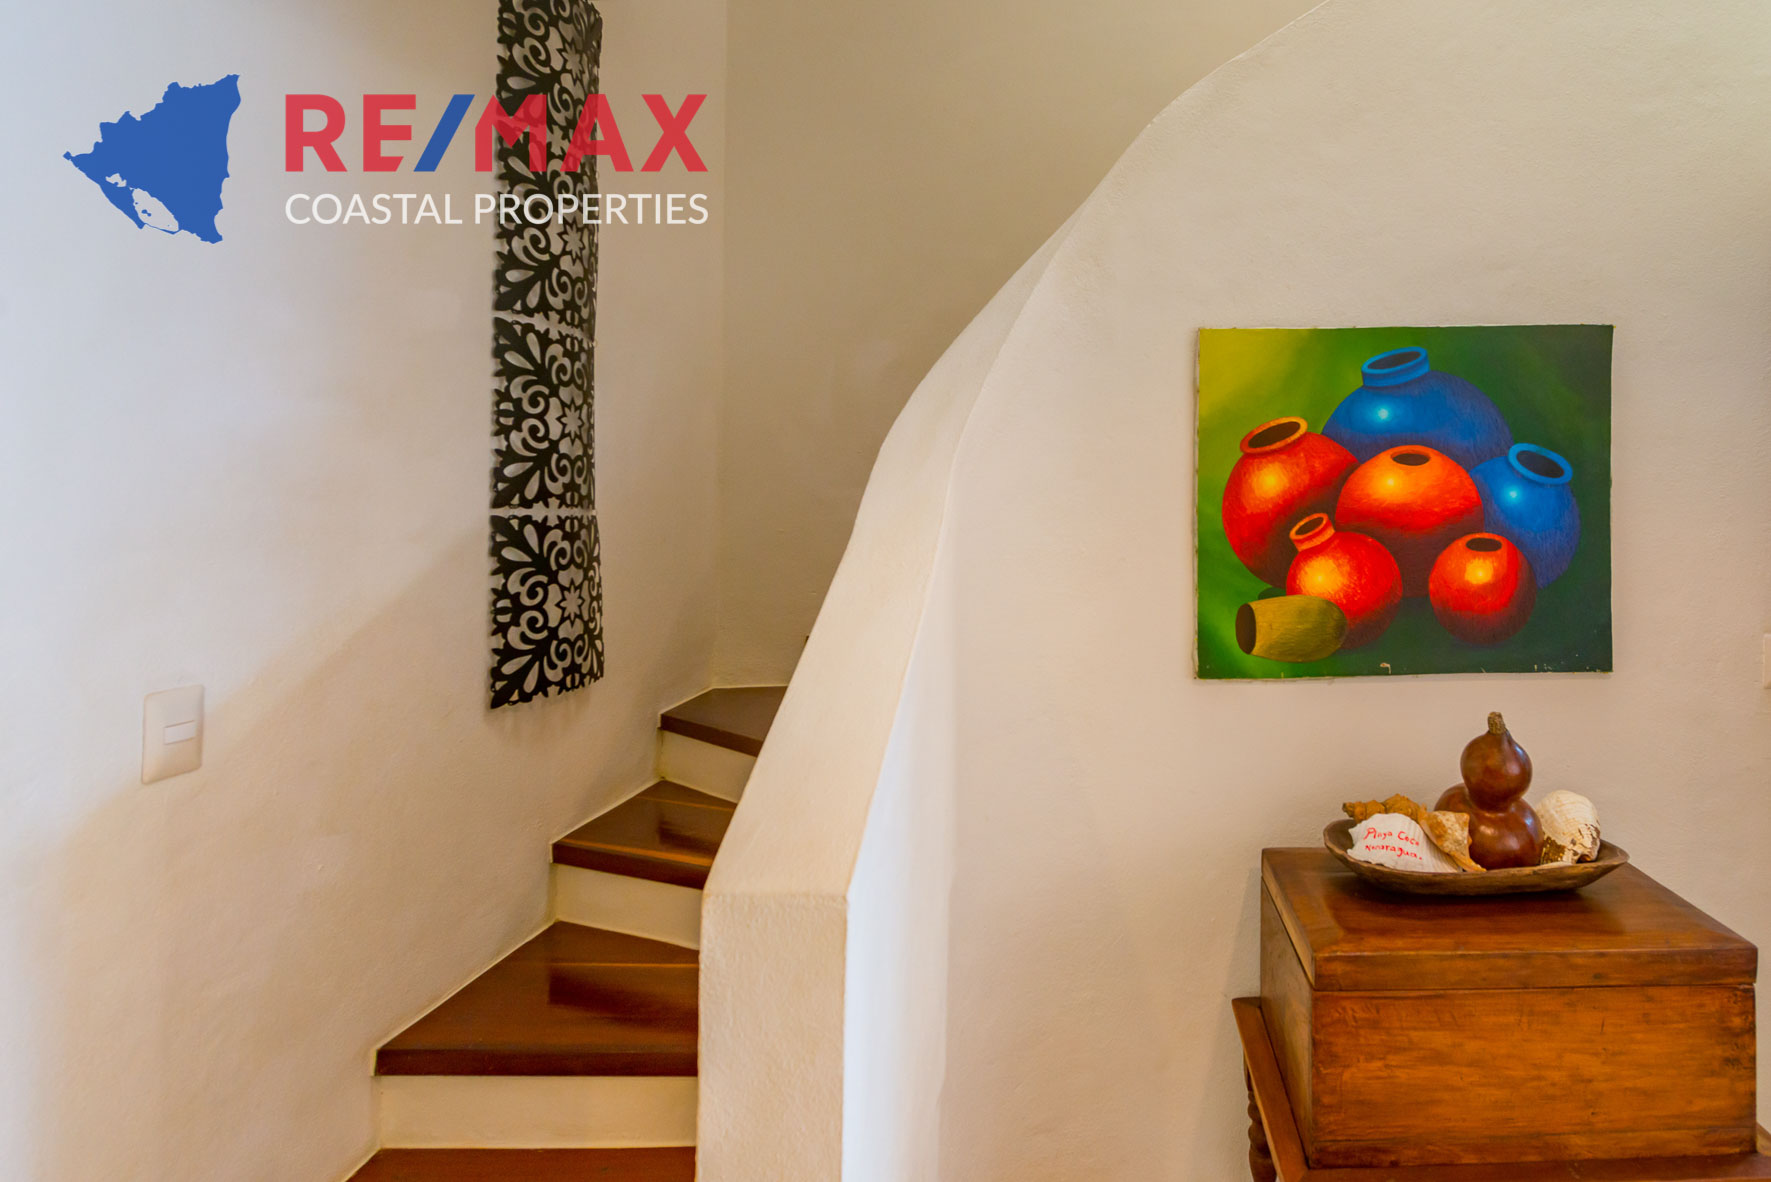 https://property-nicaragua.com/pedrodev/wp-content/uploads/2012/06/Playa-Coco-Townhome-2-REMAX-Coastal-Properties-17.jpg